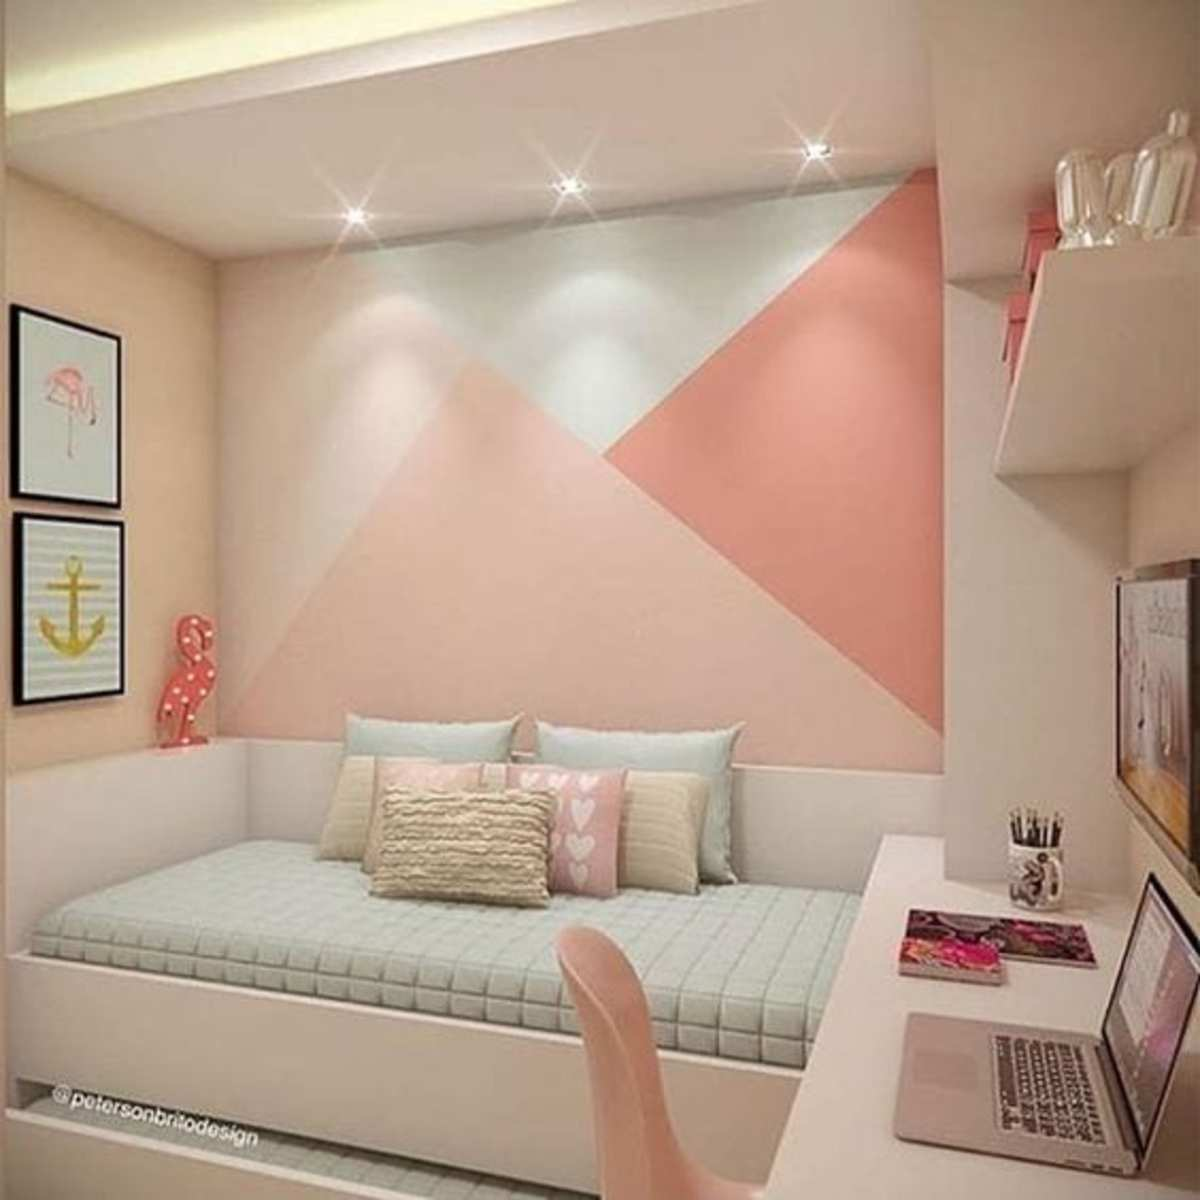 The contemporary interior teen bedroom in a simple and beautiful style.